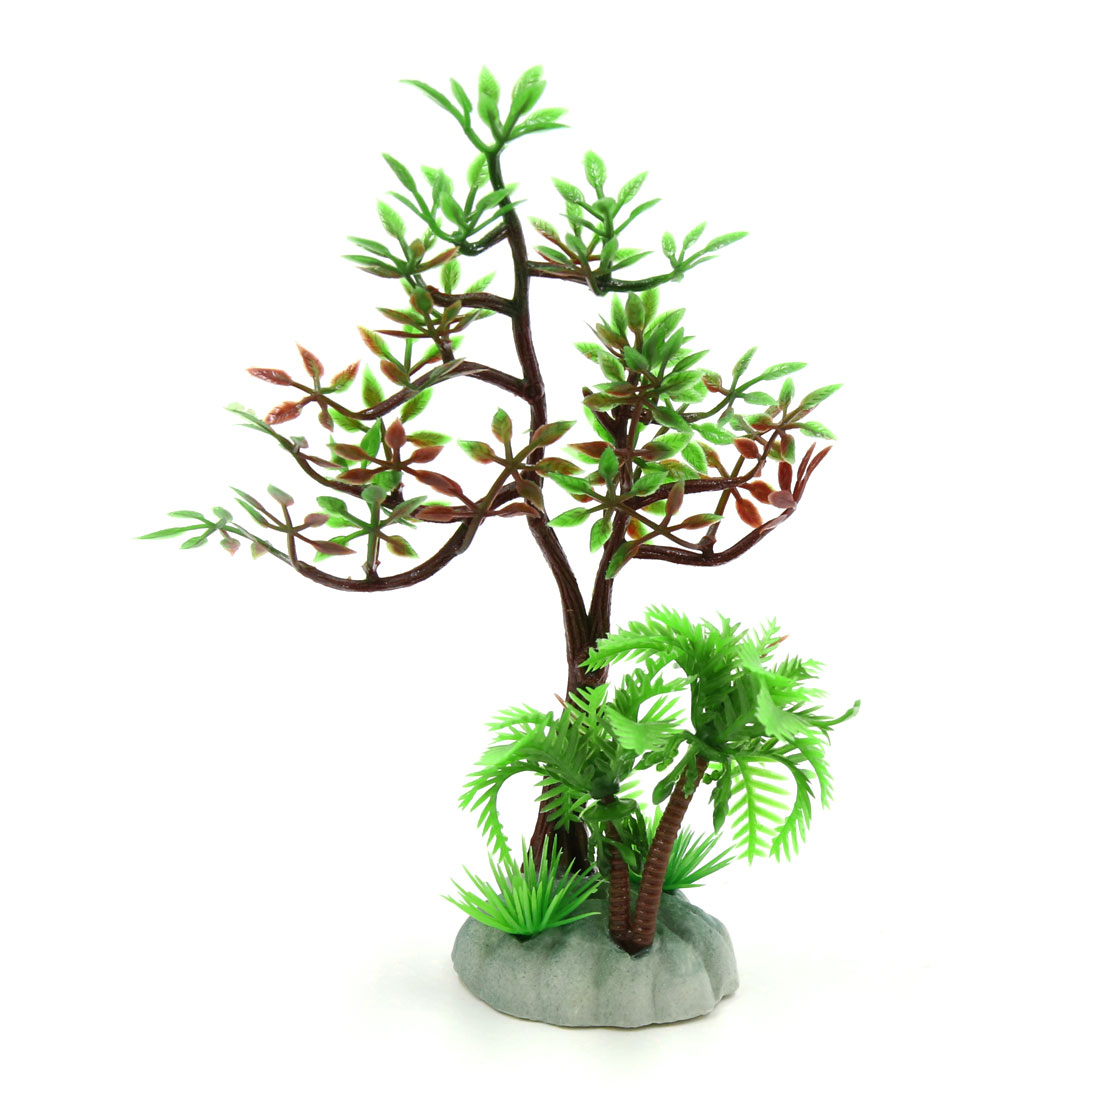 Plastic Plant Aquarium Fishbowl Decoration Ornament for Small Tanks